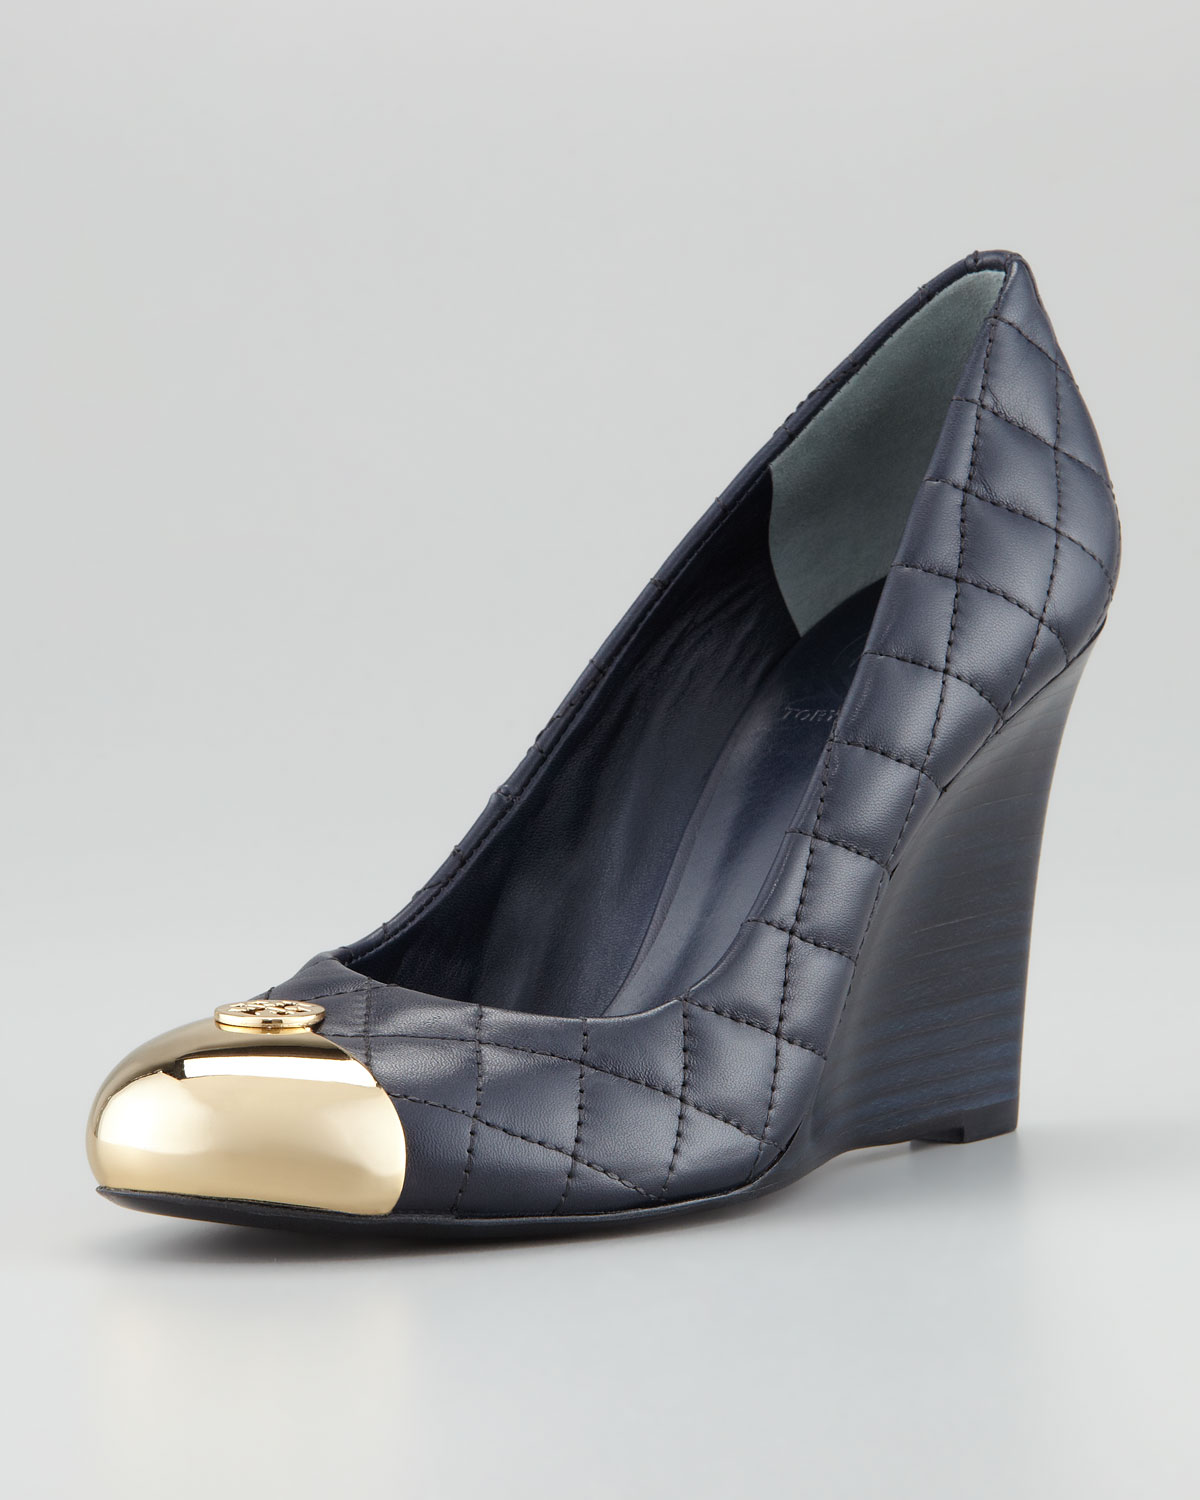 c19681516d1f Lyst - Tory Burch Kaitlin Quilted Leather Wedge Heel in Black